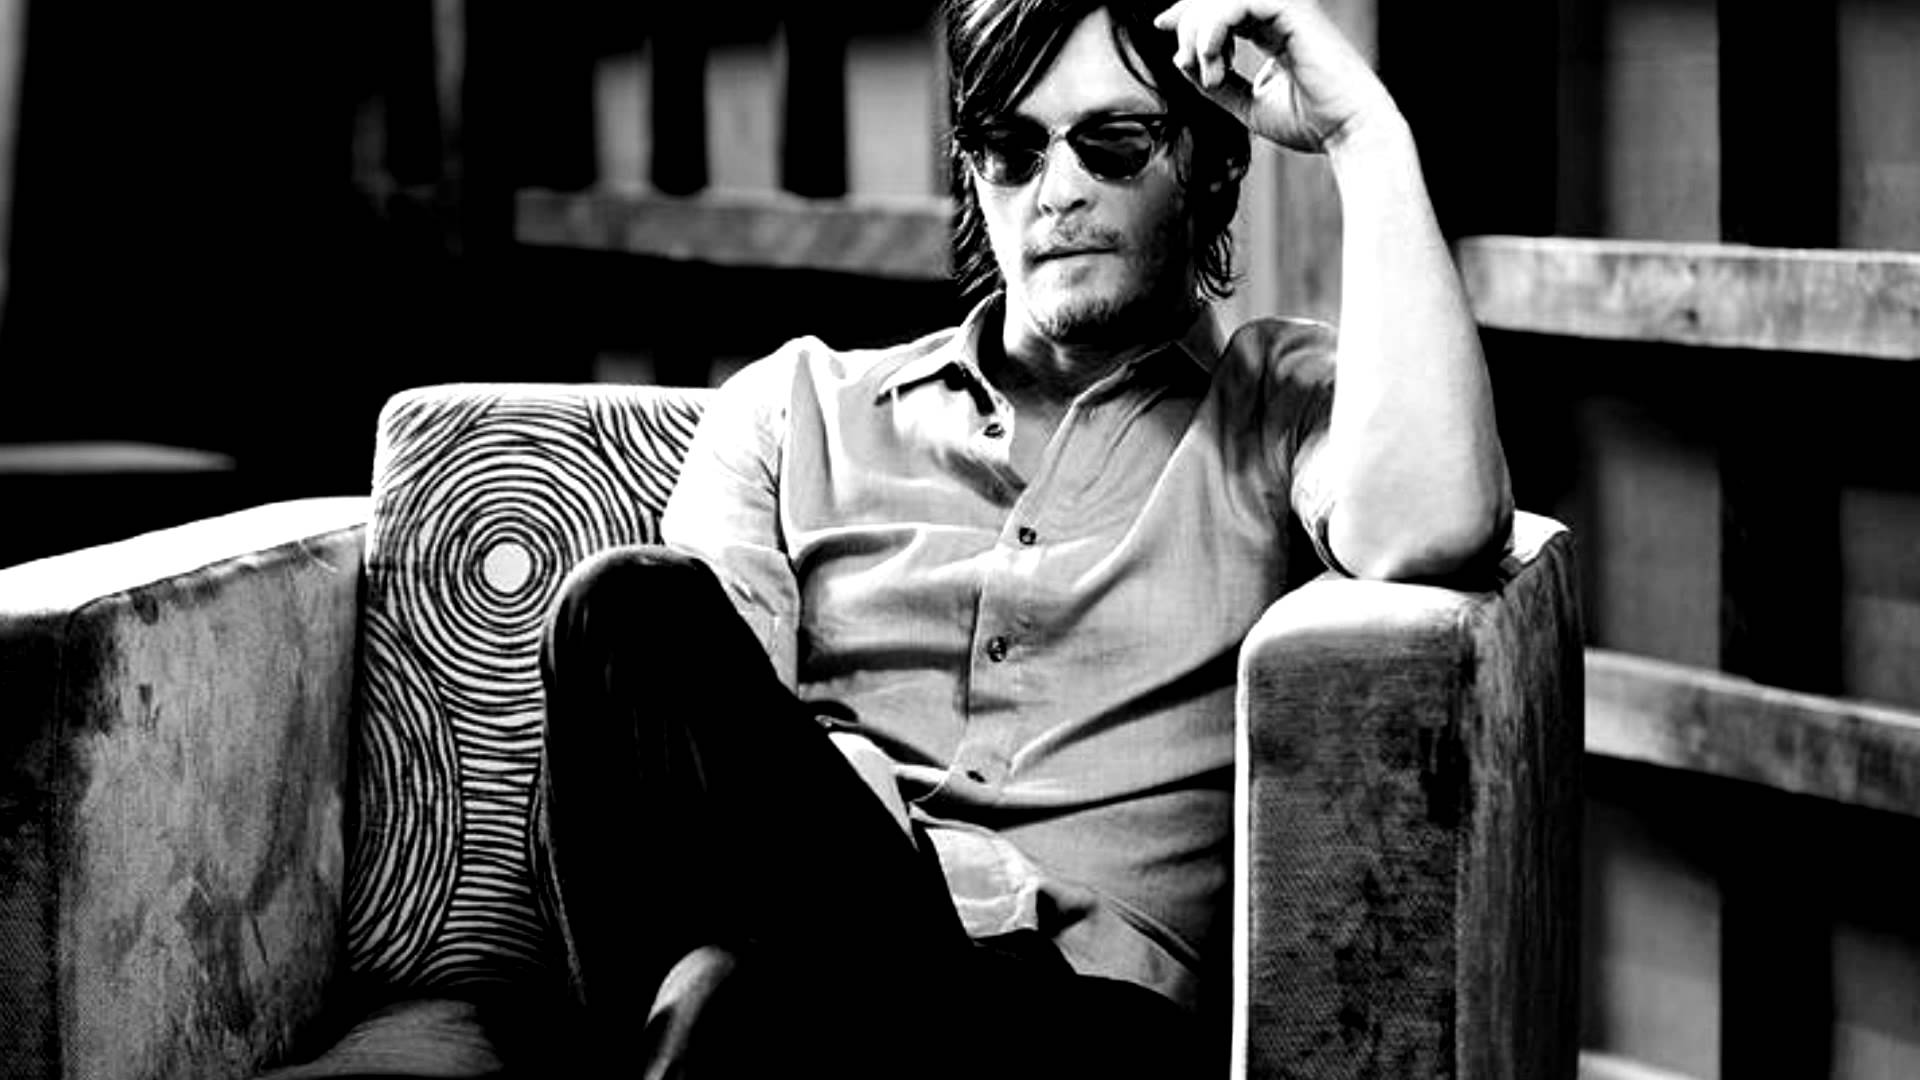 Norman Reedus Wallpapers High Resolution And Quality Download